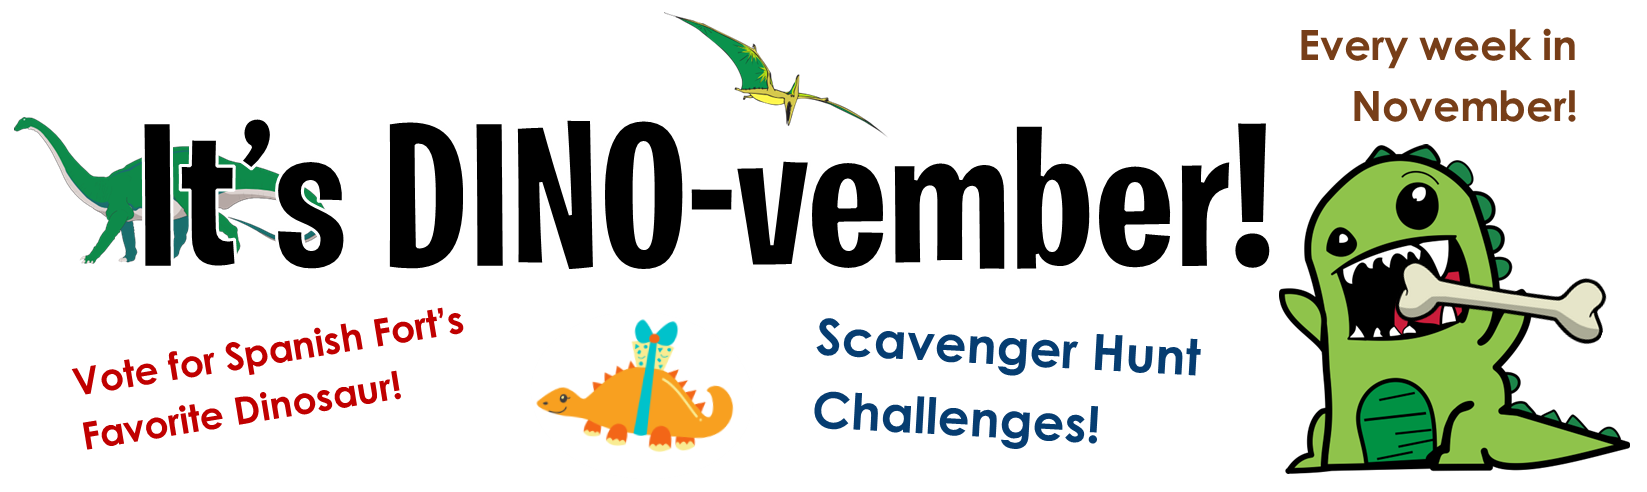 It's Dinovember at Spanish Fort Public Library this November. Participate by voting on your favorite dinosaur in the library or online! Scavenger hunts in the library for prizes every week in November!